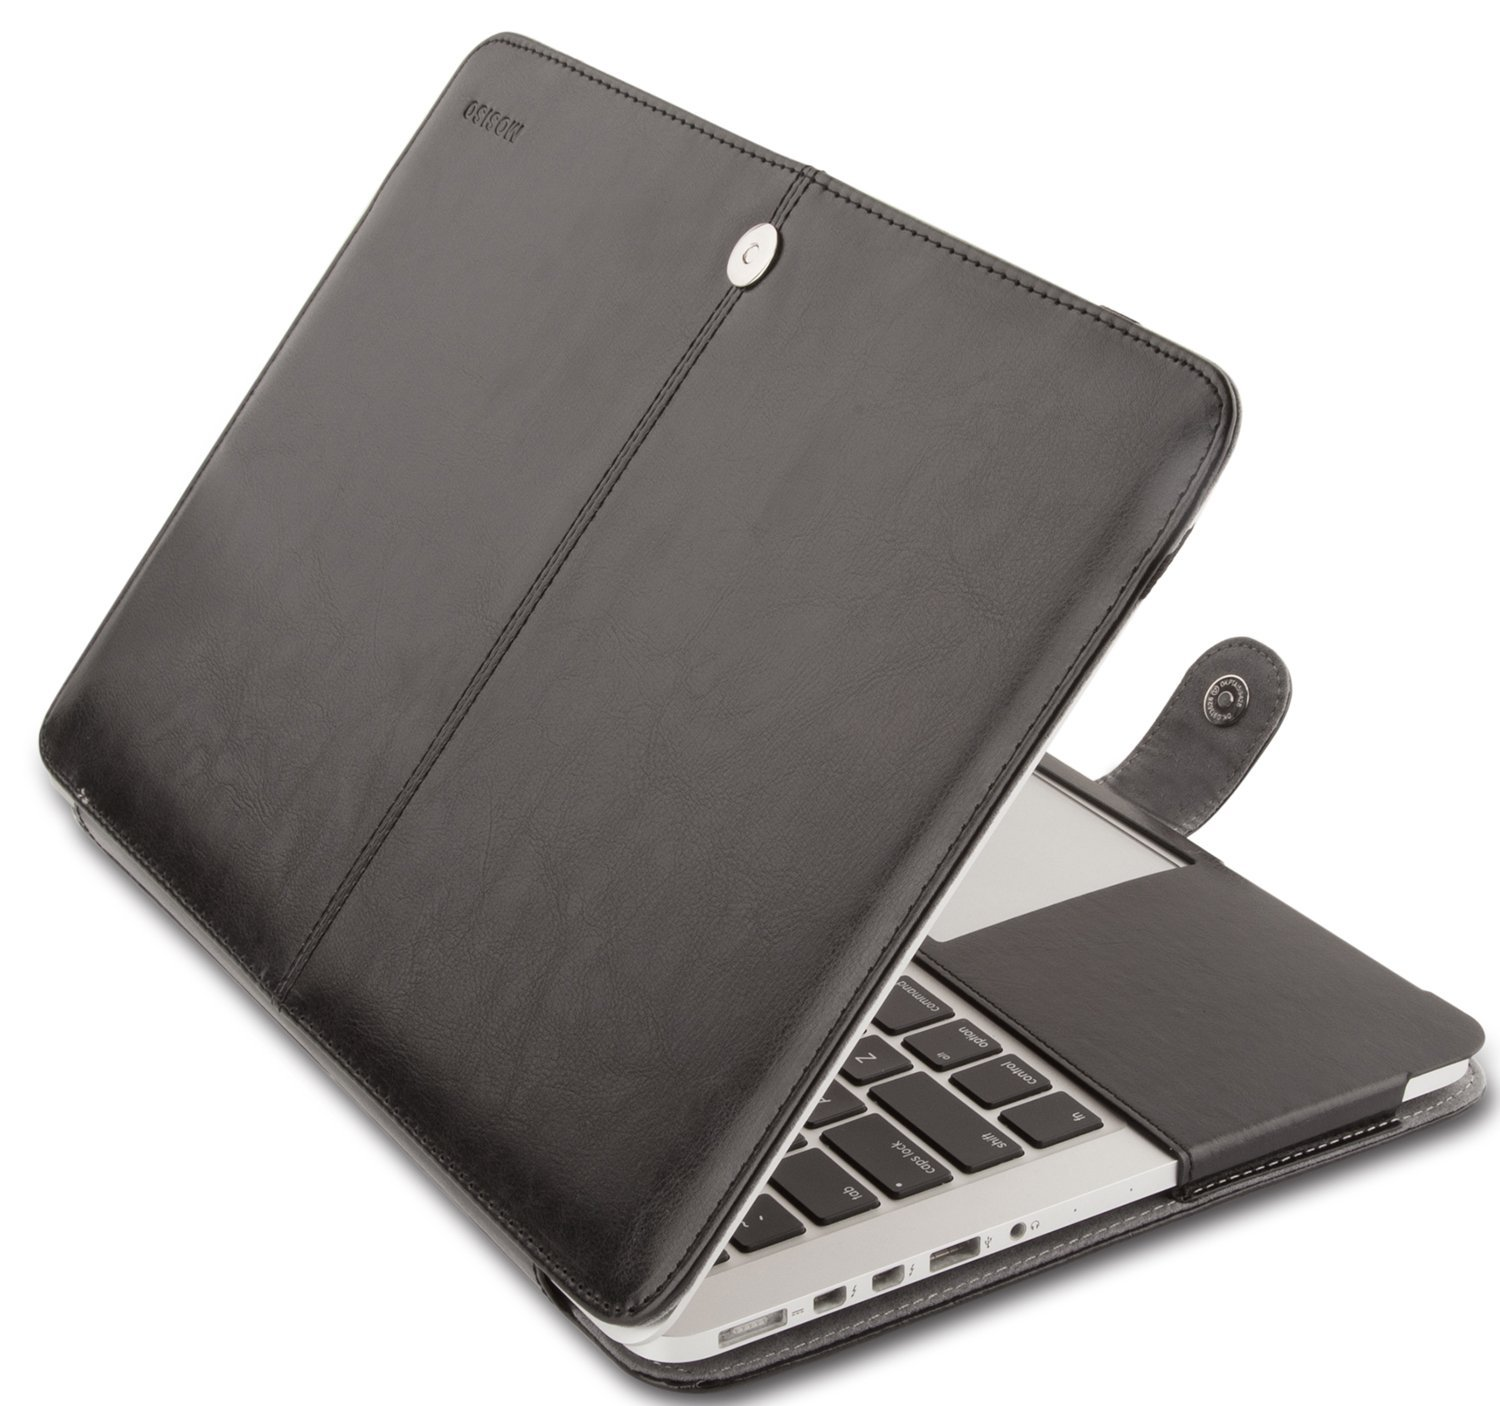 Mosiso Premium Quality PU Leather Book Cover Folio Case with Stand Function for MacBook Pro 15 Inch with Retina Display (Model: A1398), Black